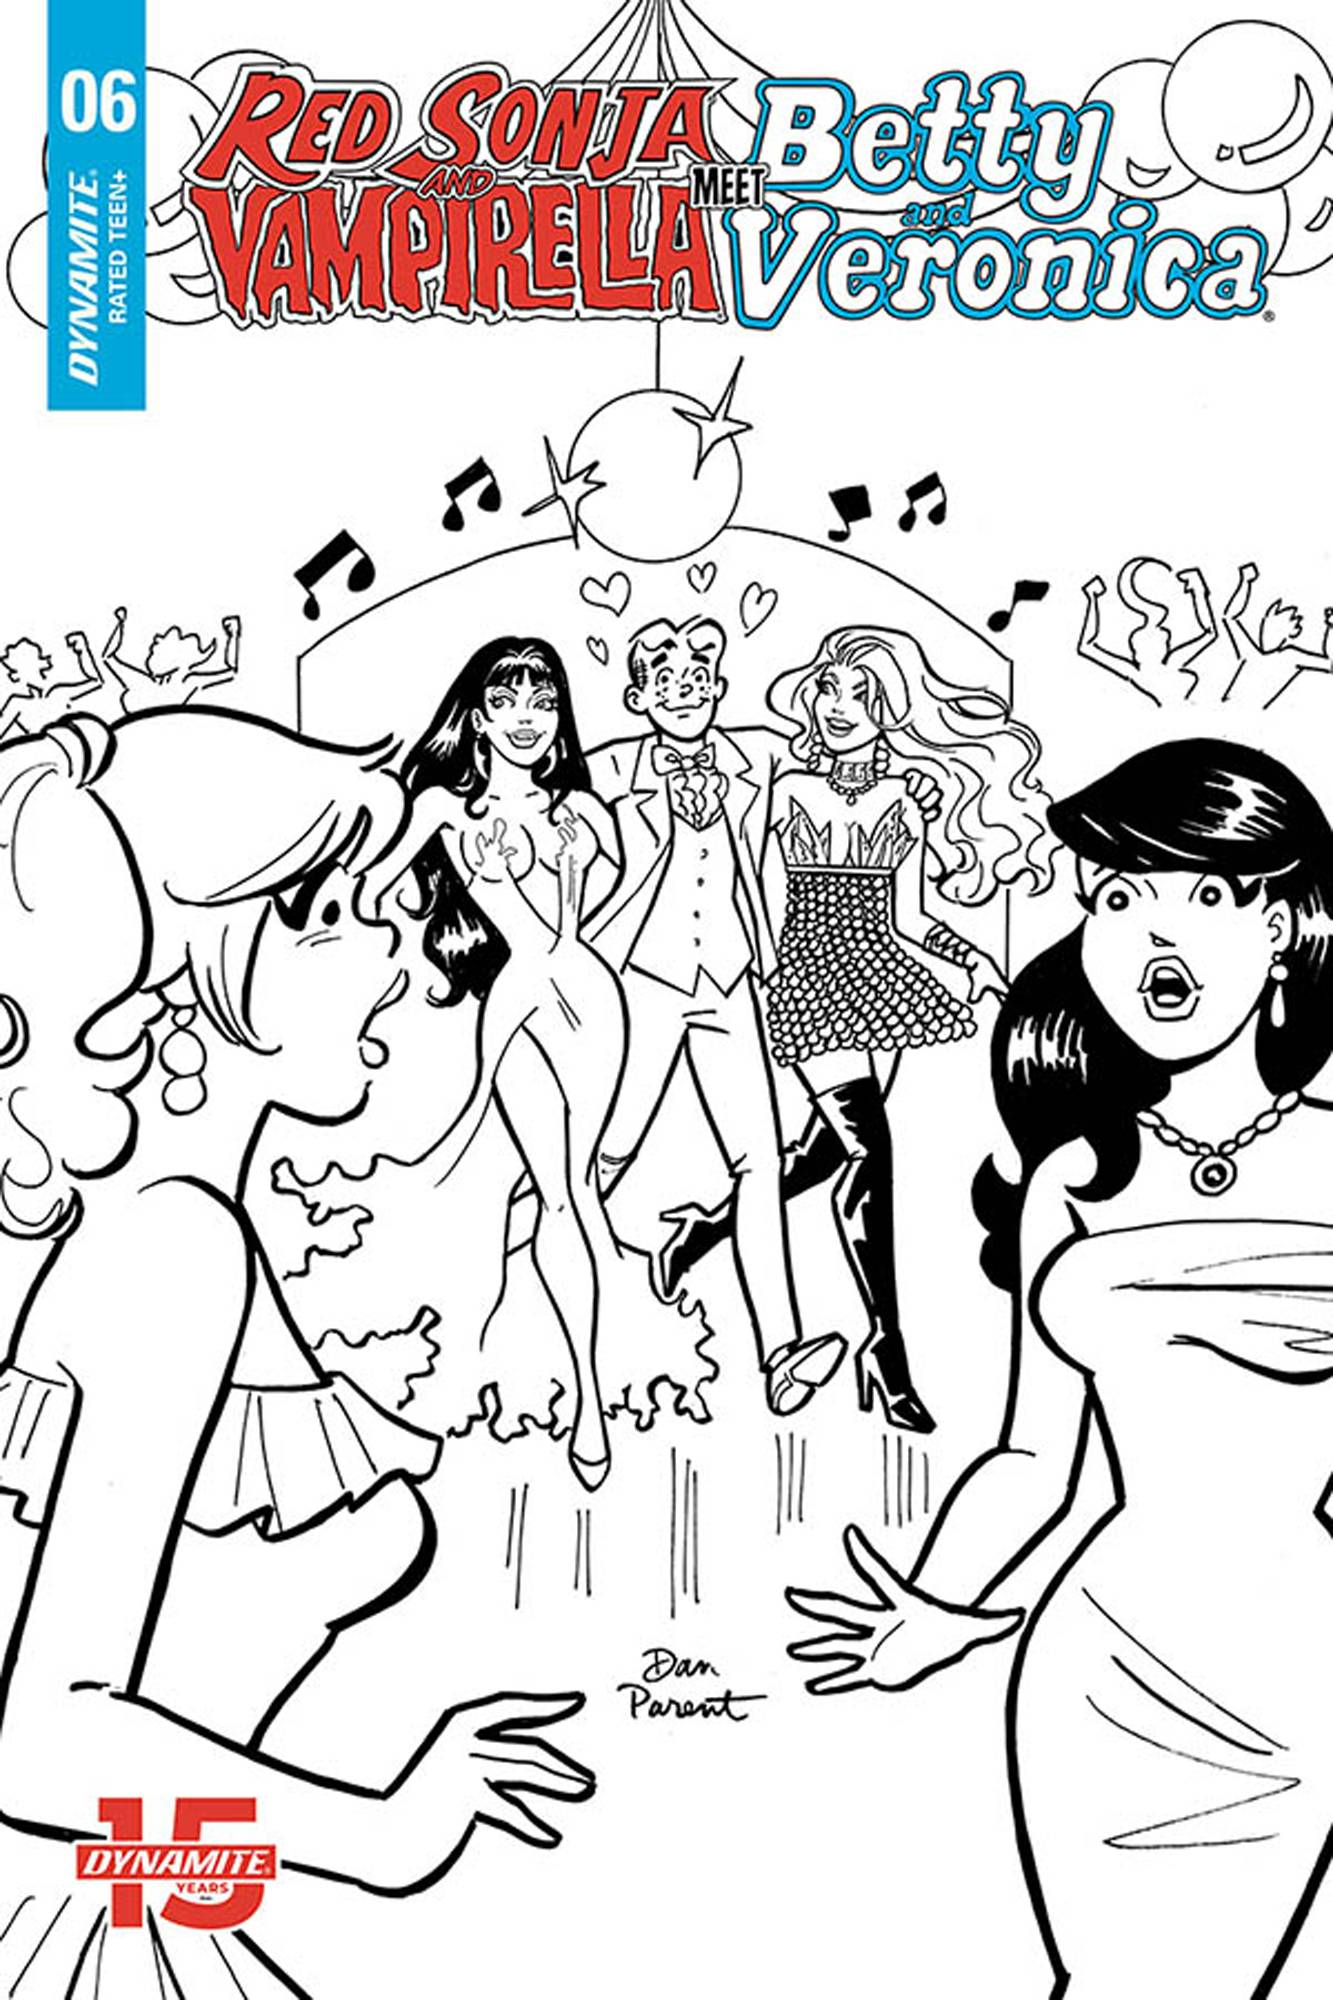 RED SONJA VAMPIRELLA BETTY VERONICA #6 10 COPY PARENT B&W IN